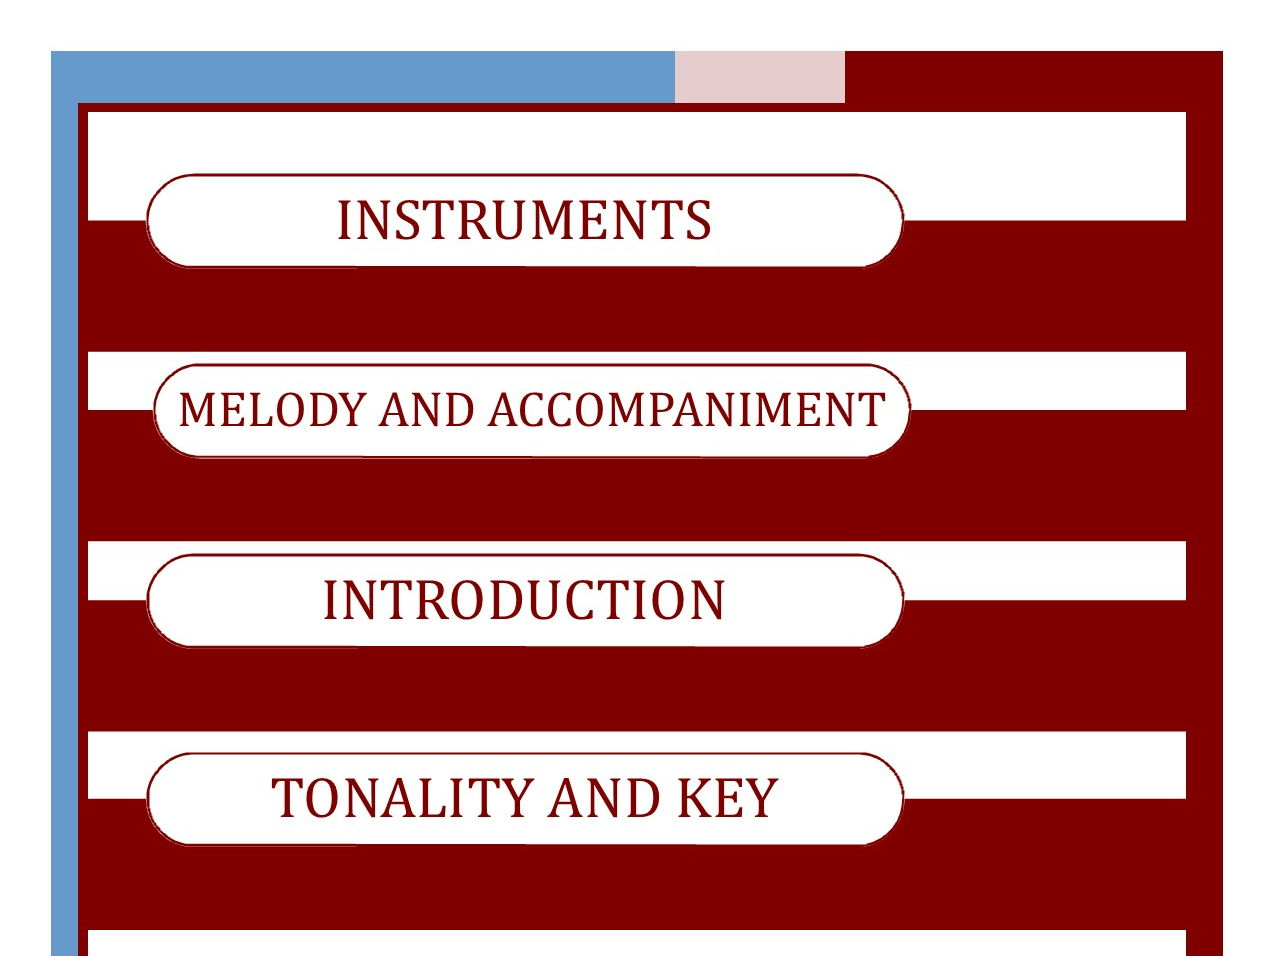 MUSIC EDEXCEL GCSE (9-1) Area of Study One BUNDLE Tonality and Key; Melody and Accompaniment; Instruments; Introduction